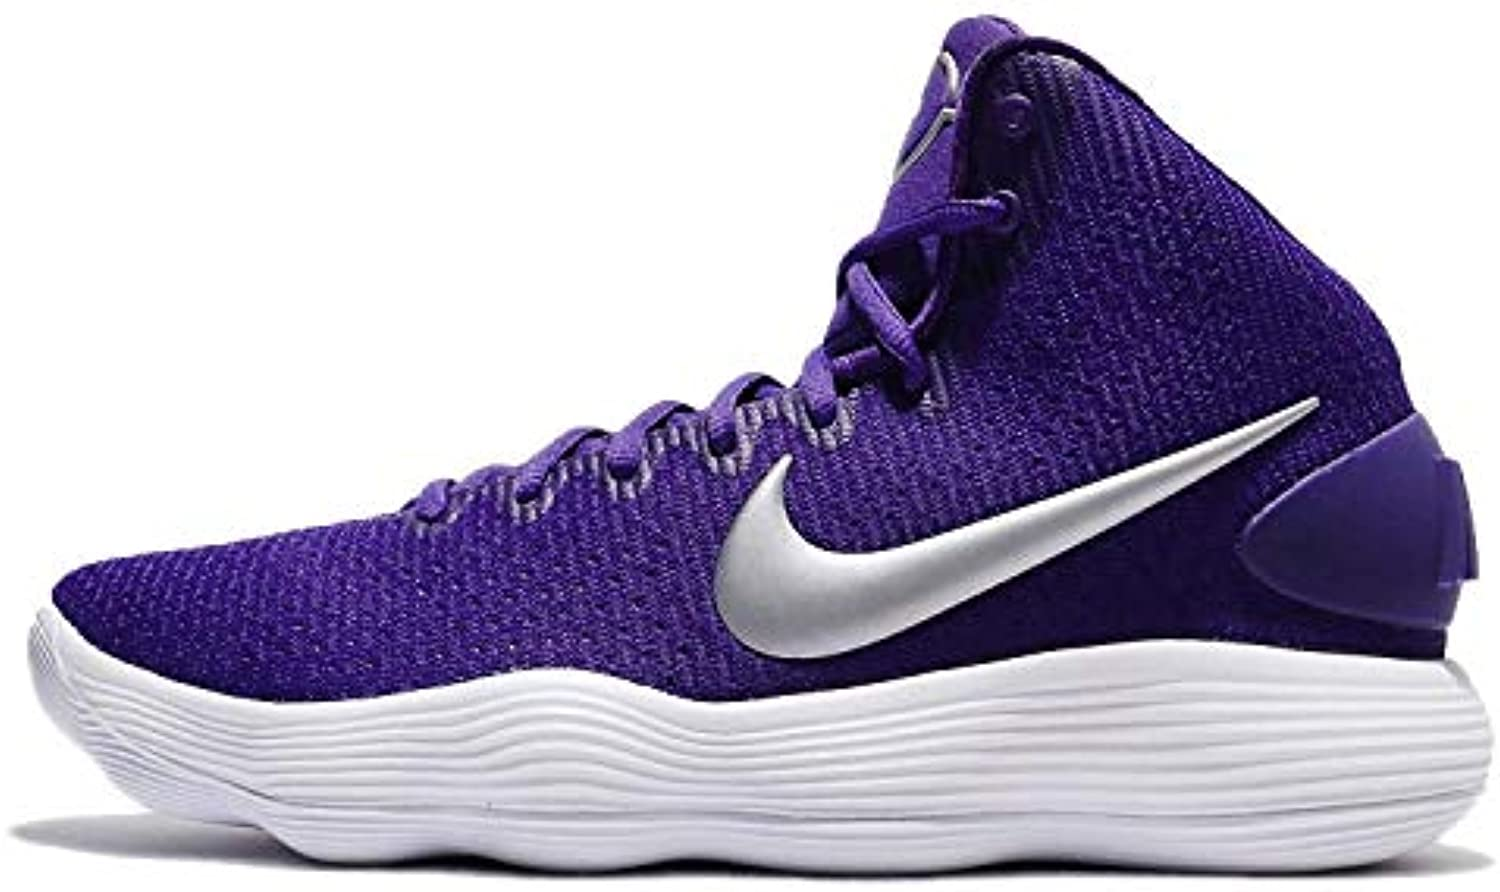 new arrival db189 c913f Nike Men s   Men s Hyperdunk 2017 TB Basketball Shoe Court   Purple Metallic  Silver White Size 13 M US   Outlet Store Online   Maschio Ragazze Scarpa ...